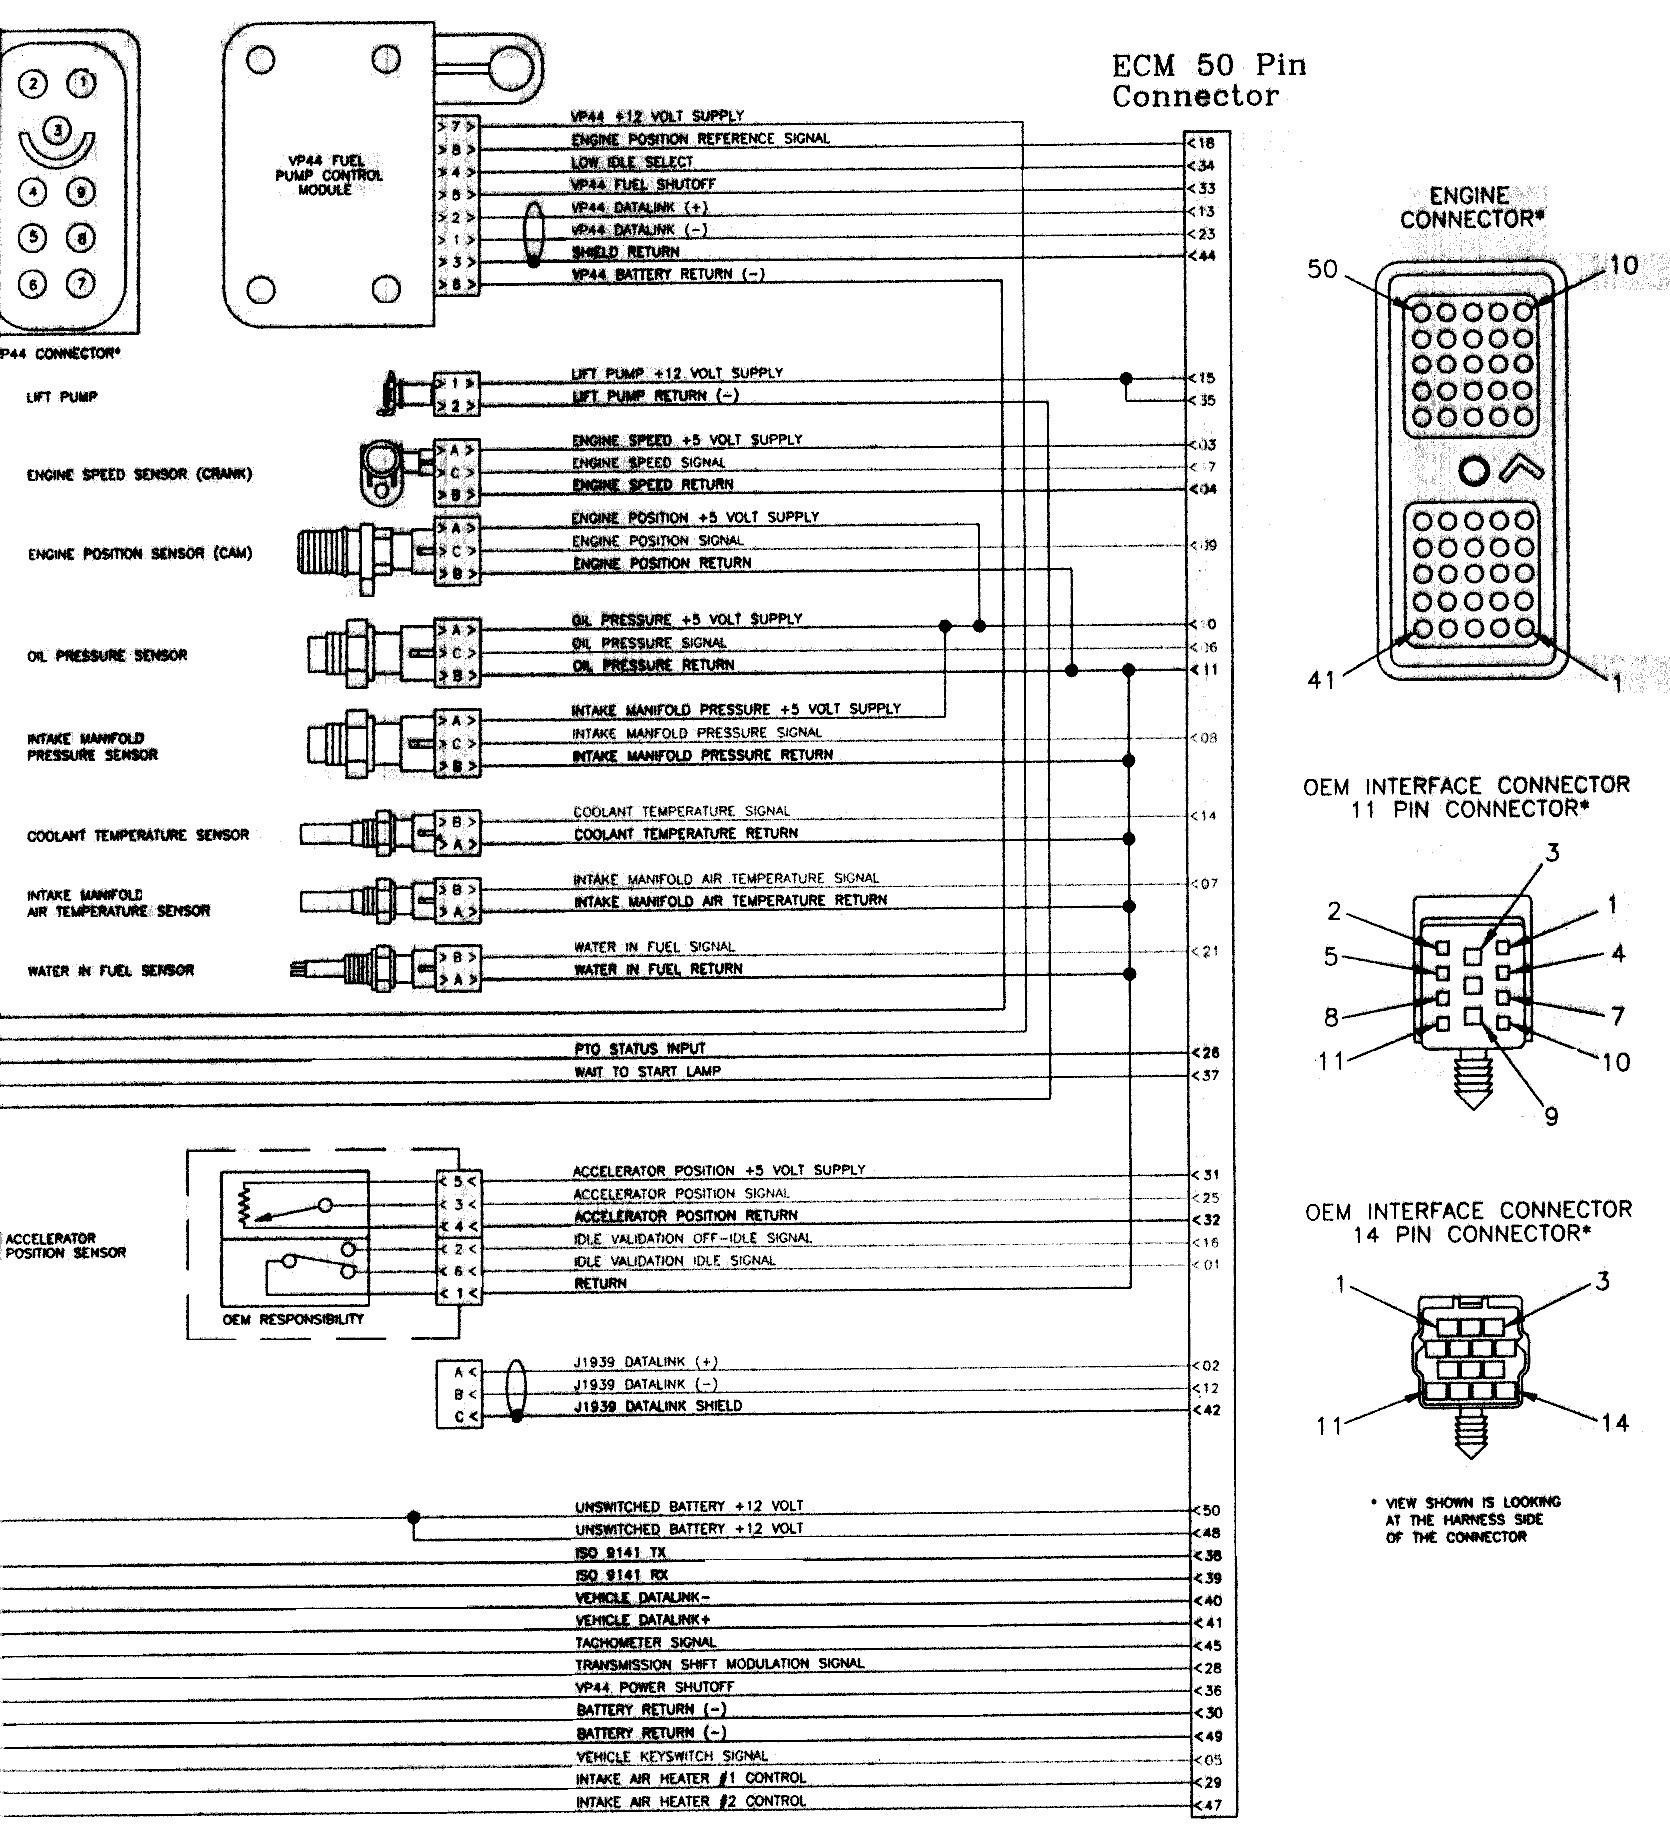 DIAGRAM] Wiring Diagram For Dodge Ram 1500 Radio FULL Version HD Quality  1500 Radio - HOW-TO-DIAGRAM.AUBE-SIAE.FRaube-siae.fr